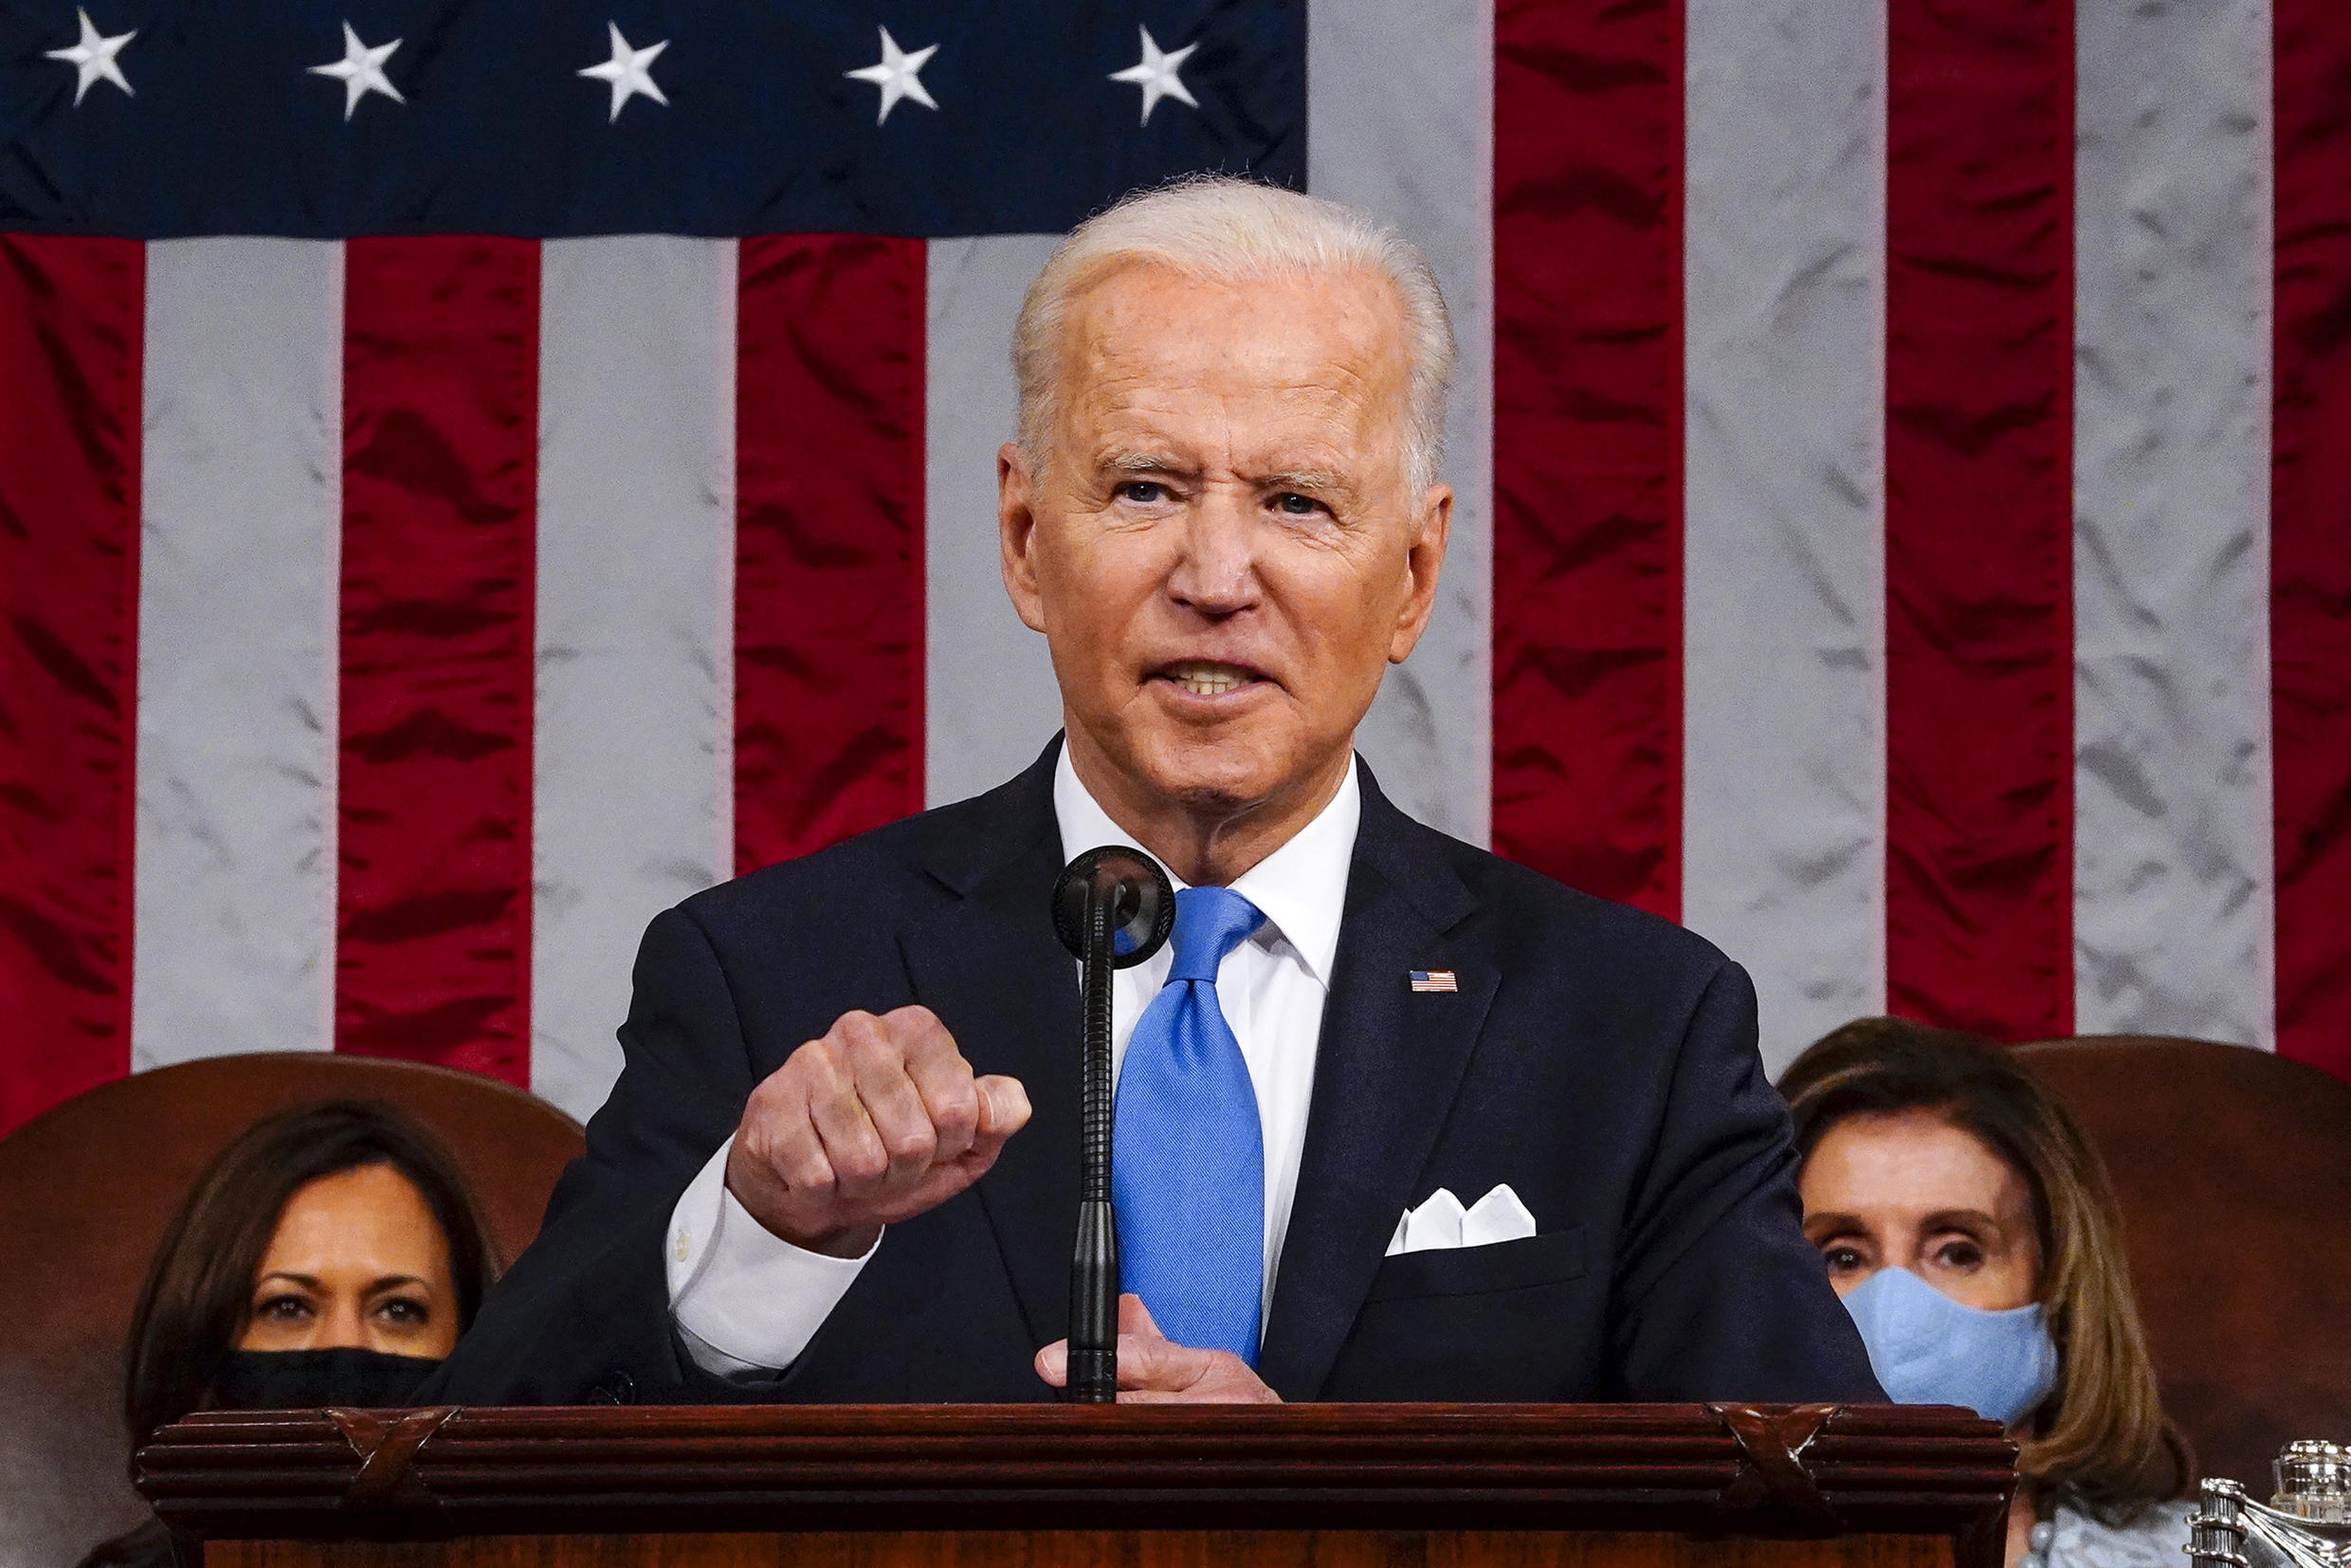 Joe Biden hailed the US vaccination rollout and recovery from the pandemic, and laid out a new massive spending splurge aimed at helping American families